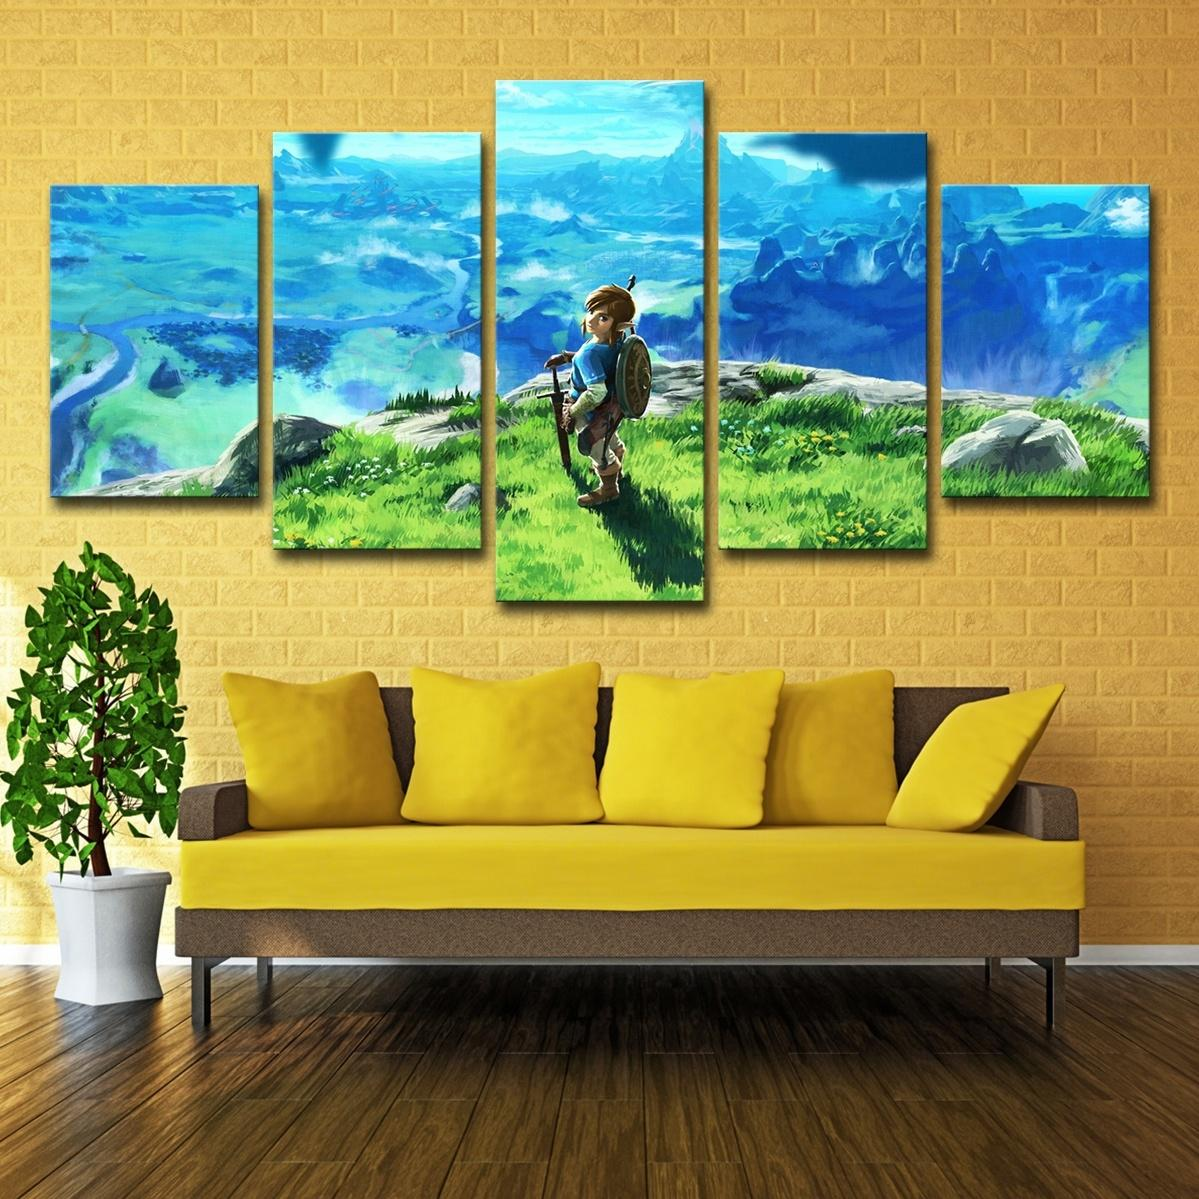 Legend Of Zelda Wall Art.2019 Only Canvas No Frame Legend Of Zelda Wall Art Hd Print Canvas Painting Fashion Hanging Pictures From Wallartpaint 20 1 Dhgate Com